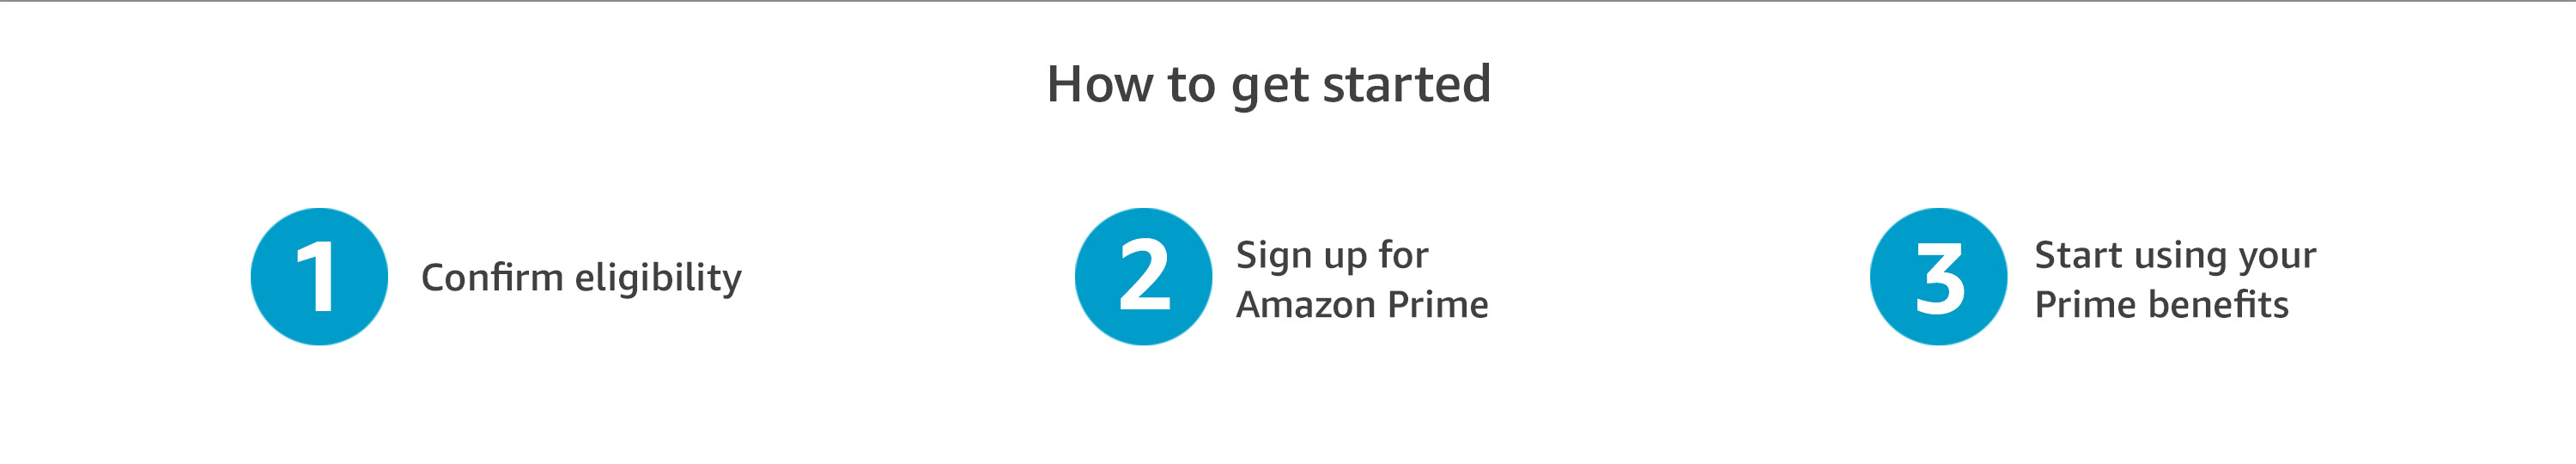 Steps to sign up for Prime